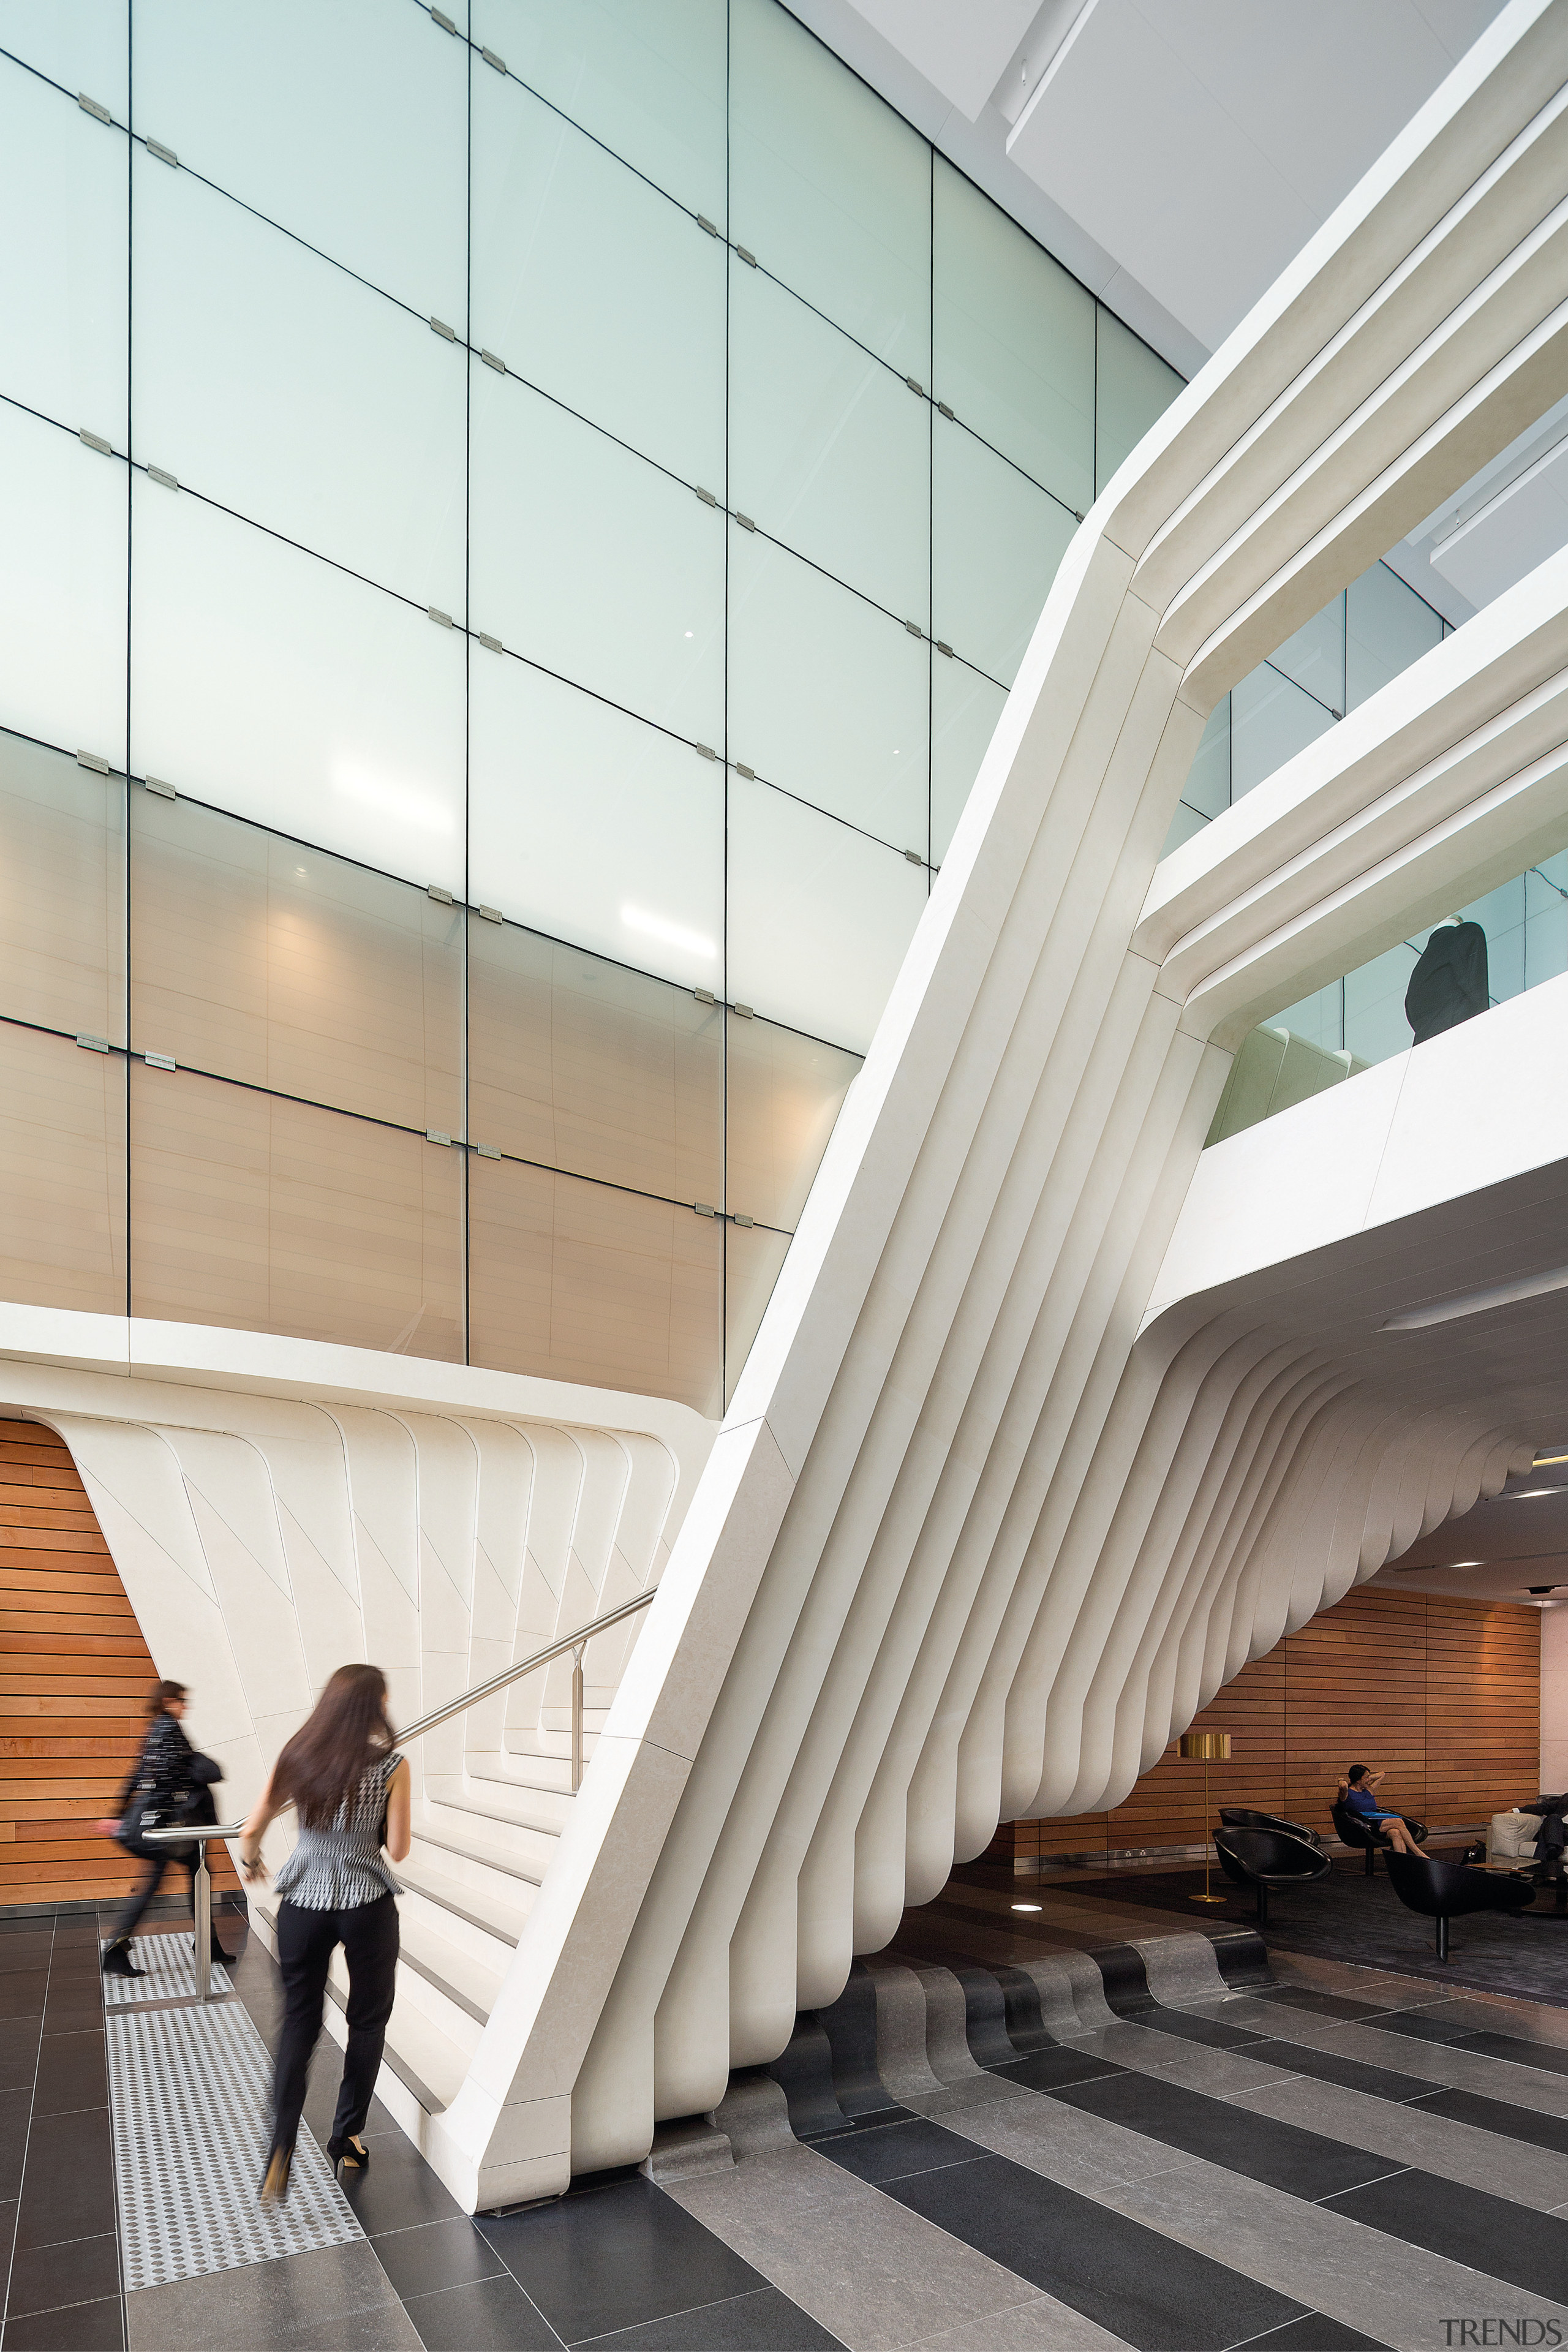 The white limestone stairs appear to turn upwards architecture, building, ceiling, daylighting, gray, white